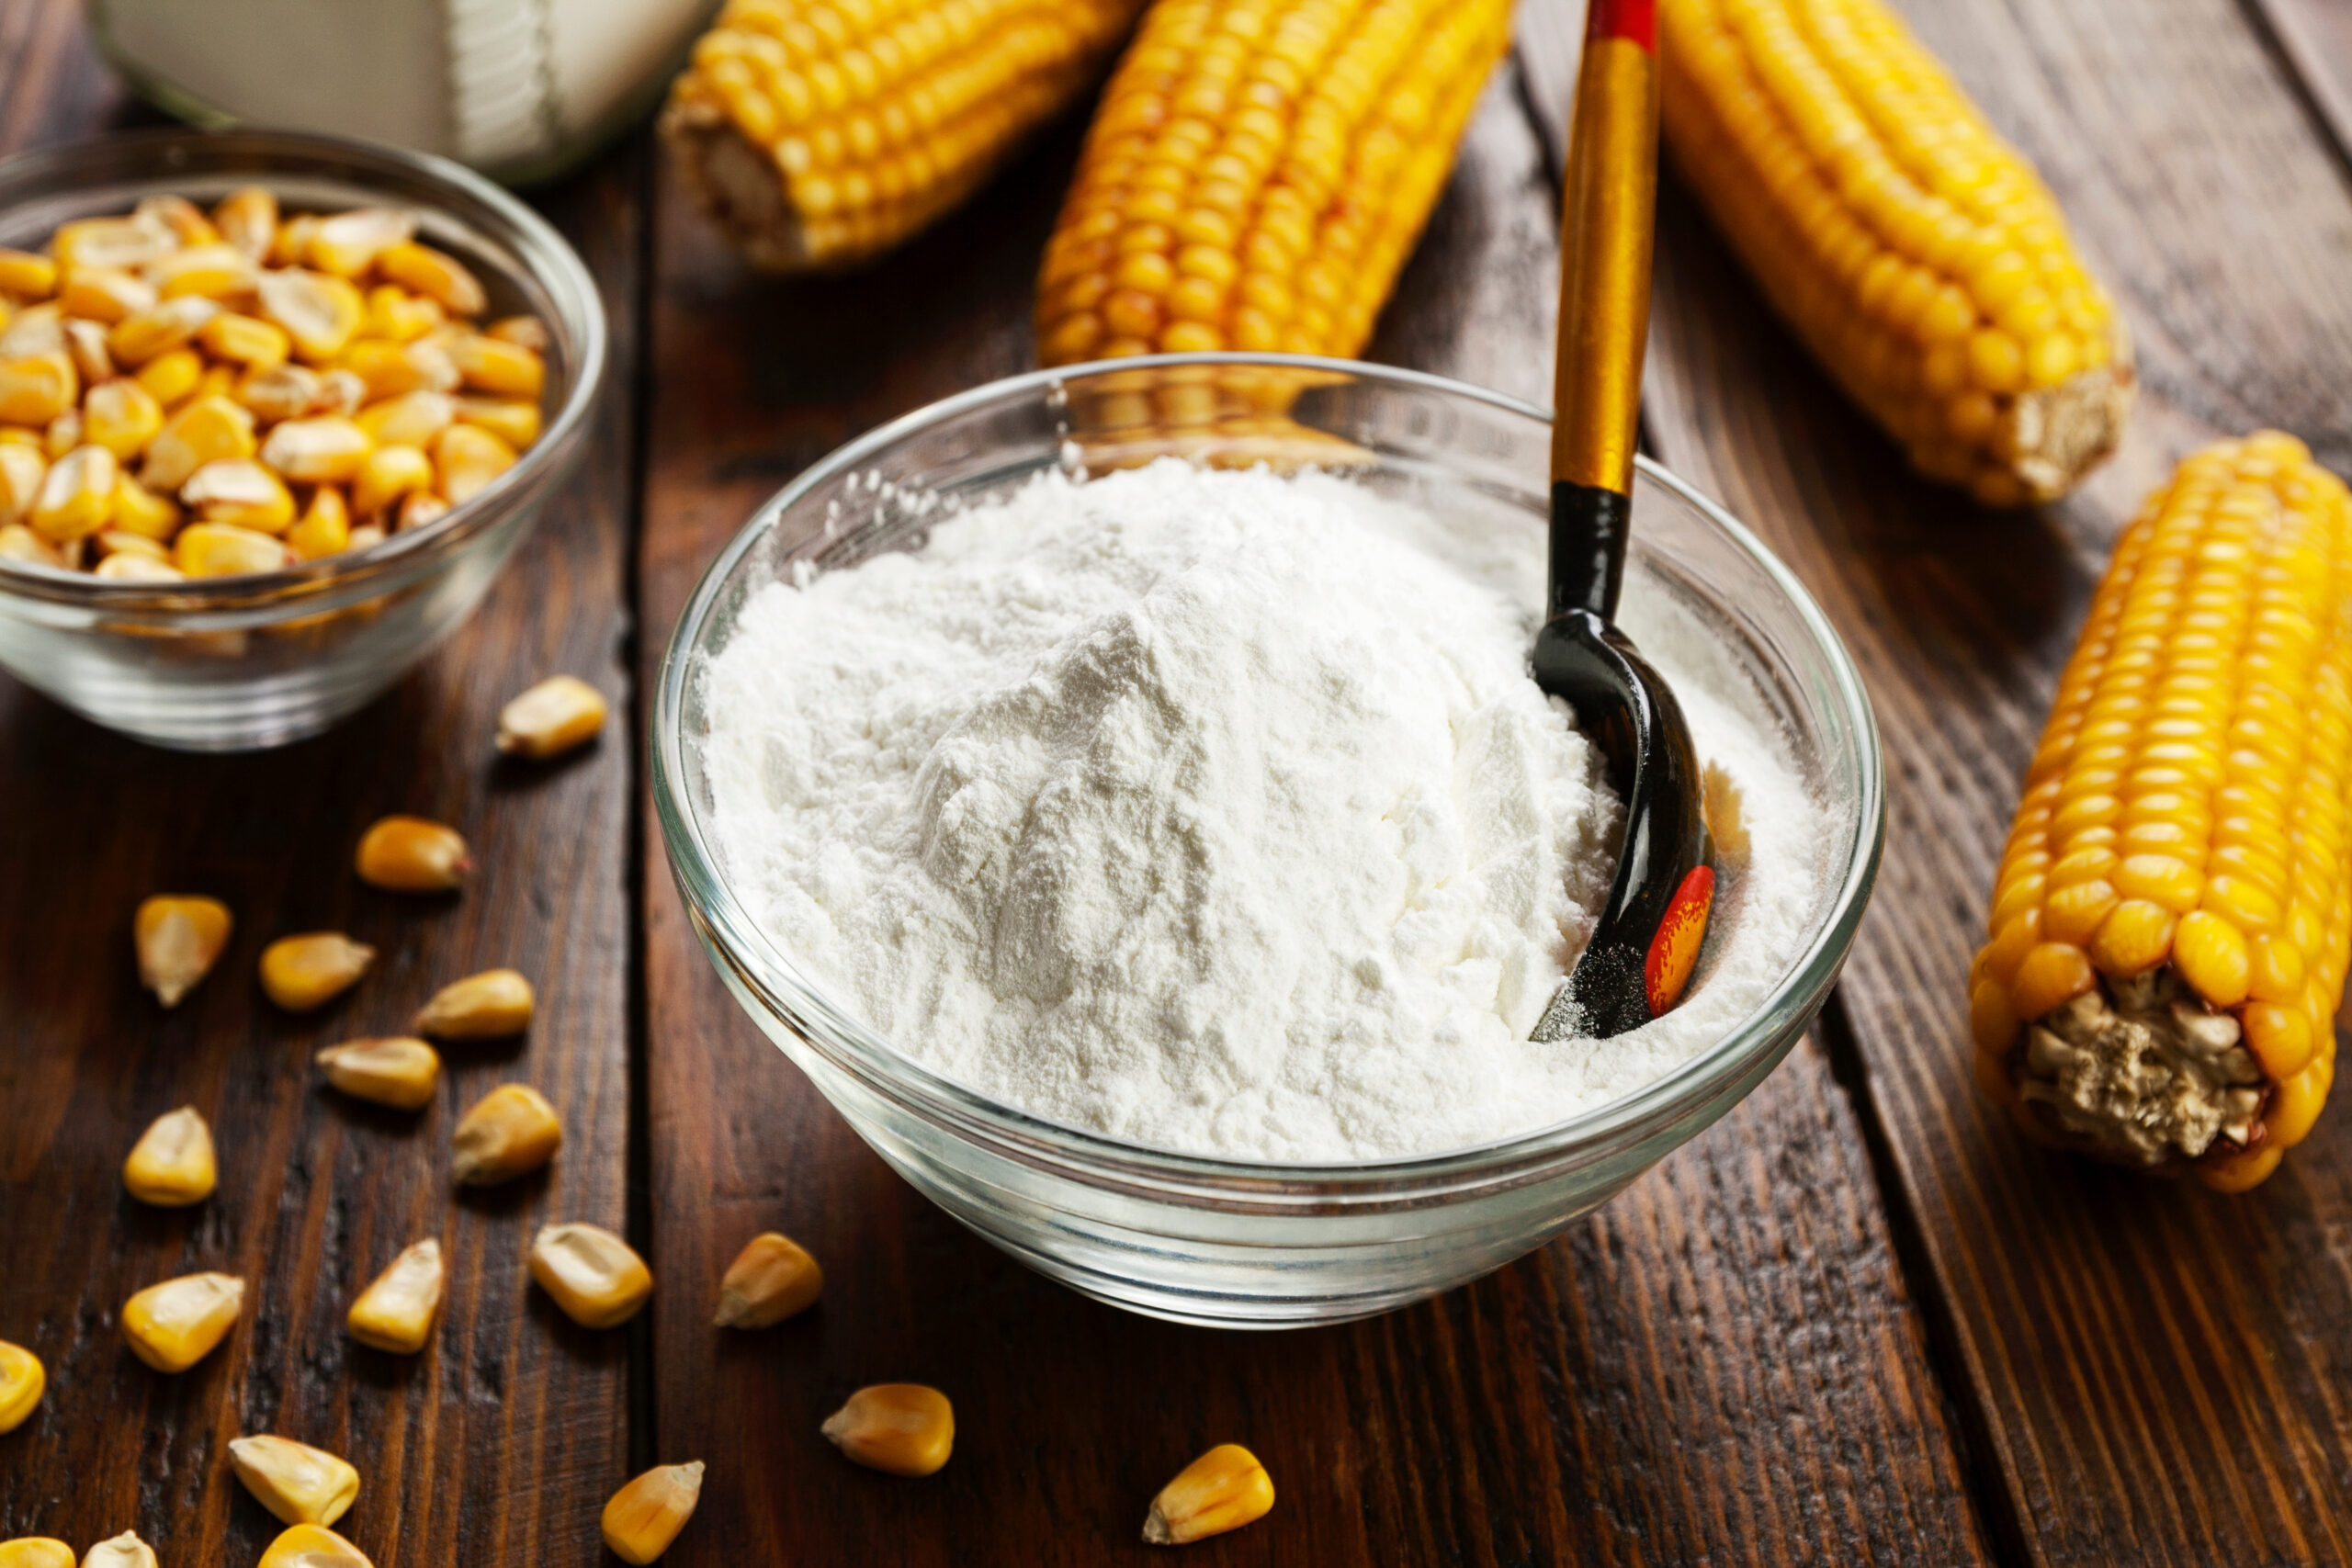 where to find starch in a grocerystore